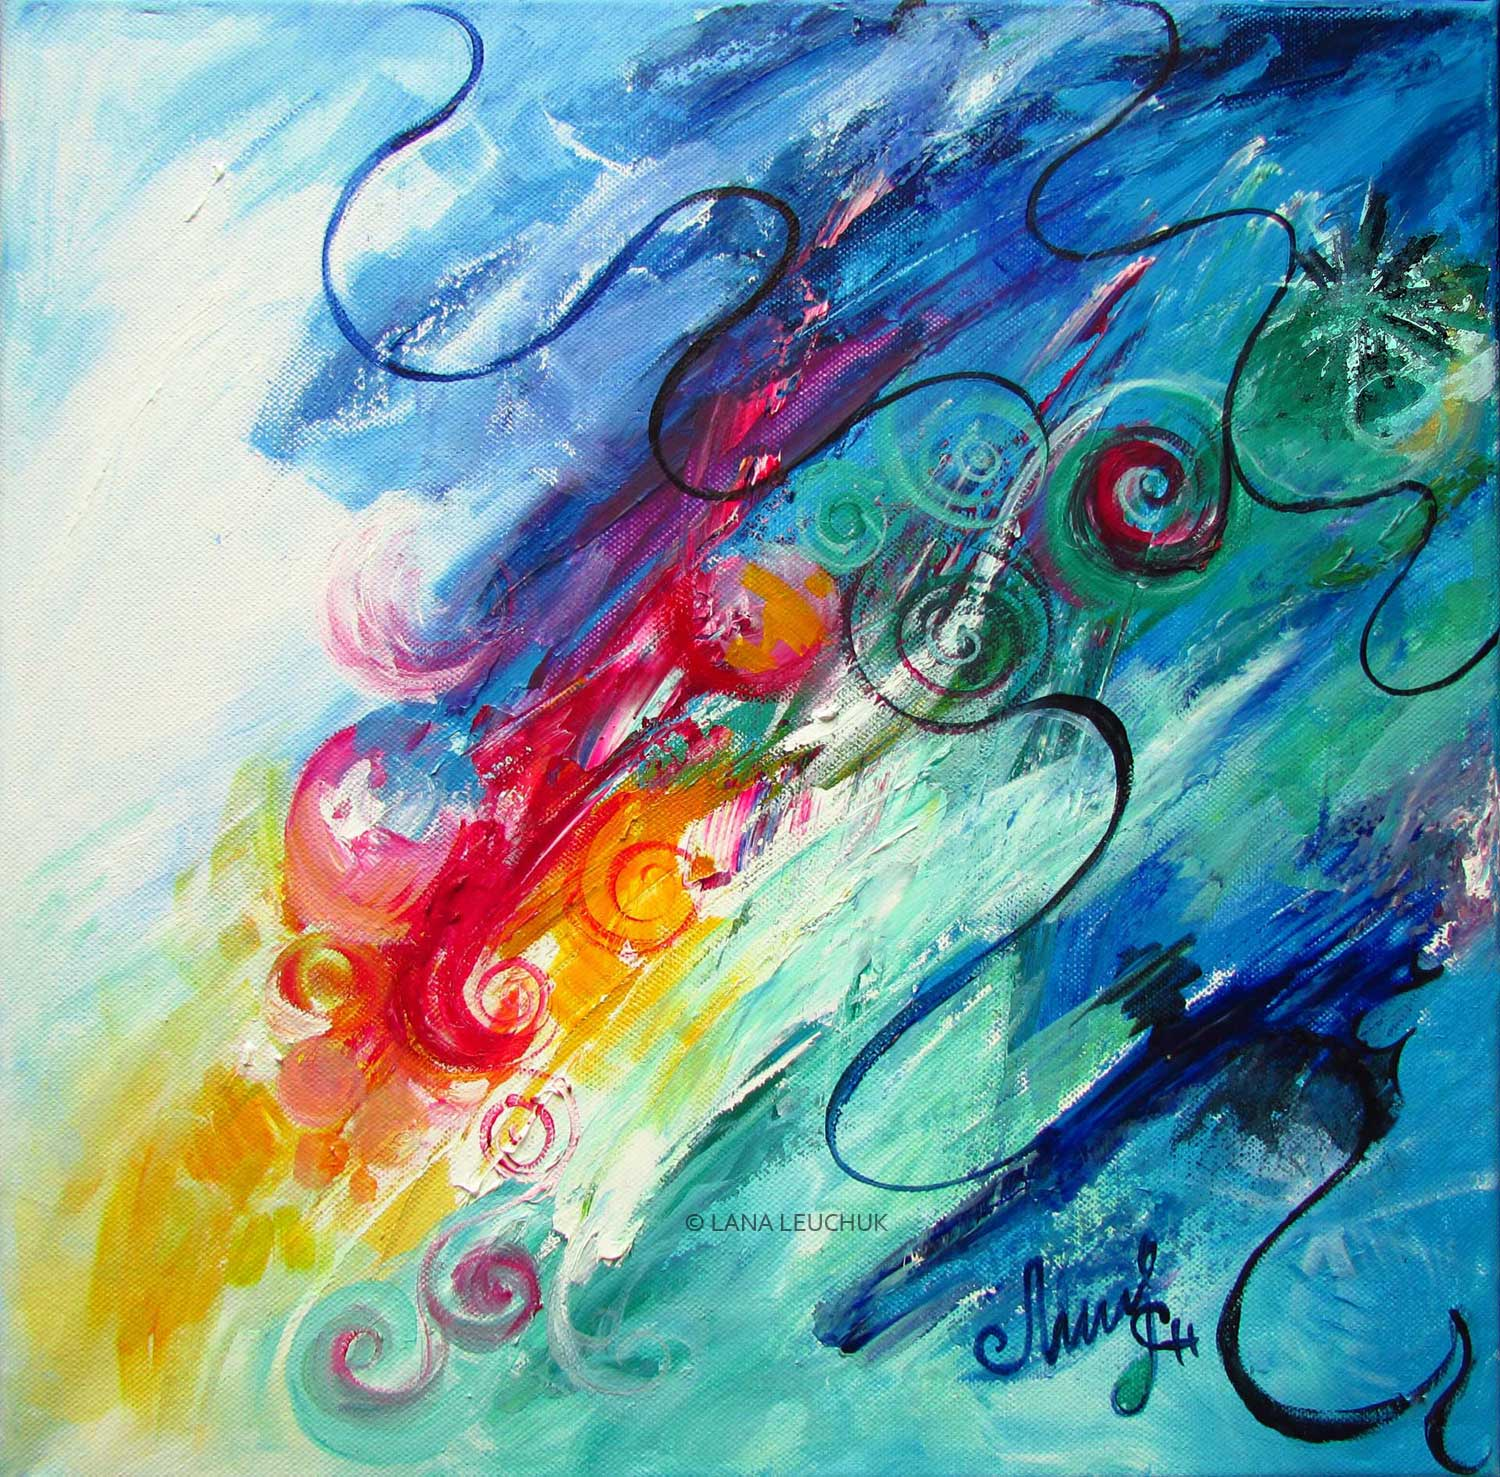 Marine-acrylic-painting-by-lanagraphic